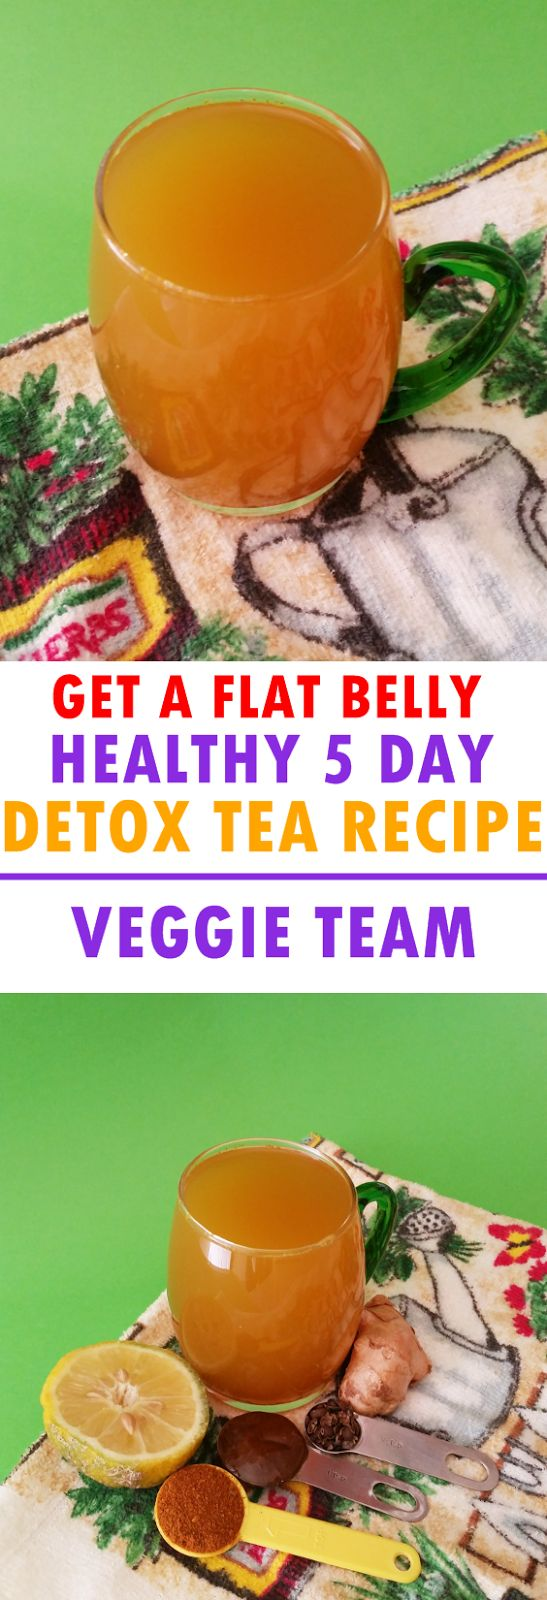 You are about to get a flat belly in only 5 days with this healthy detox tea recipe. Lose up to 3 to 4 inches off your waist and belly...